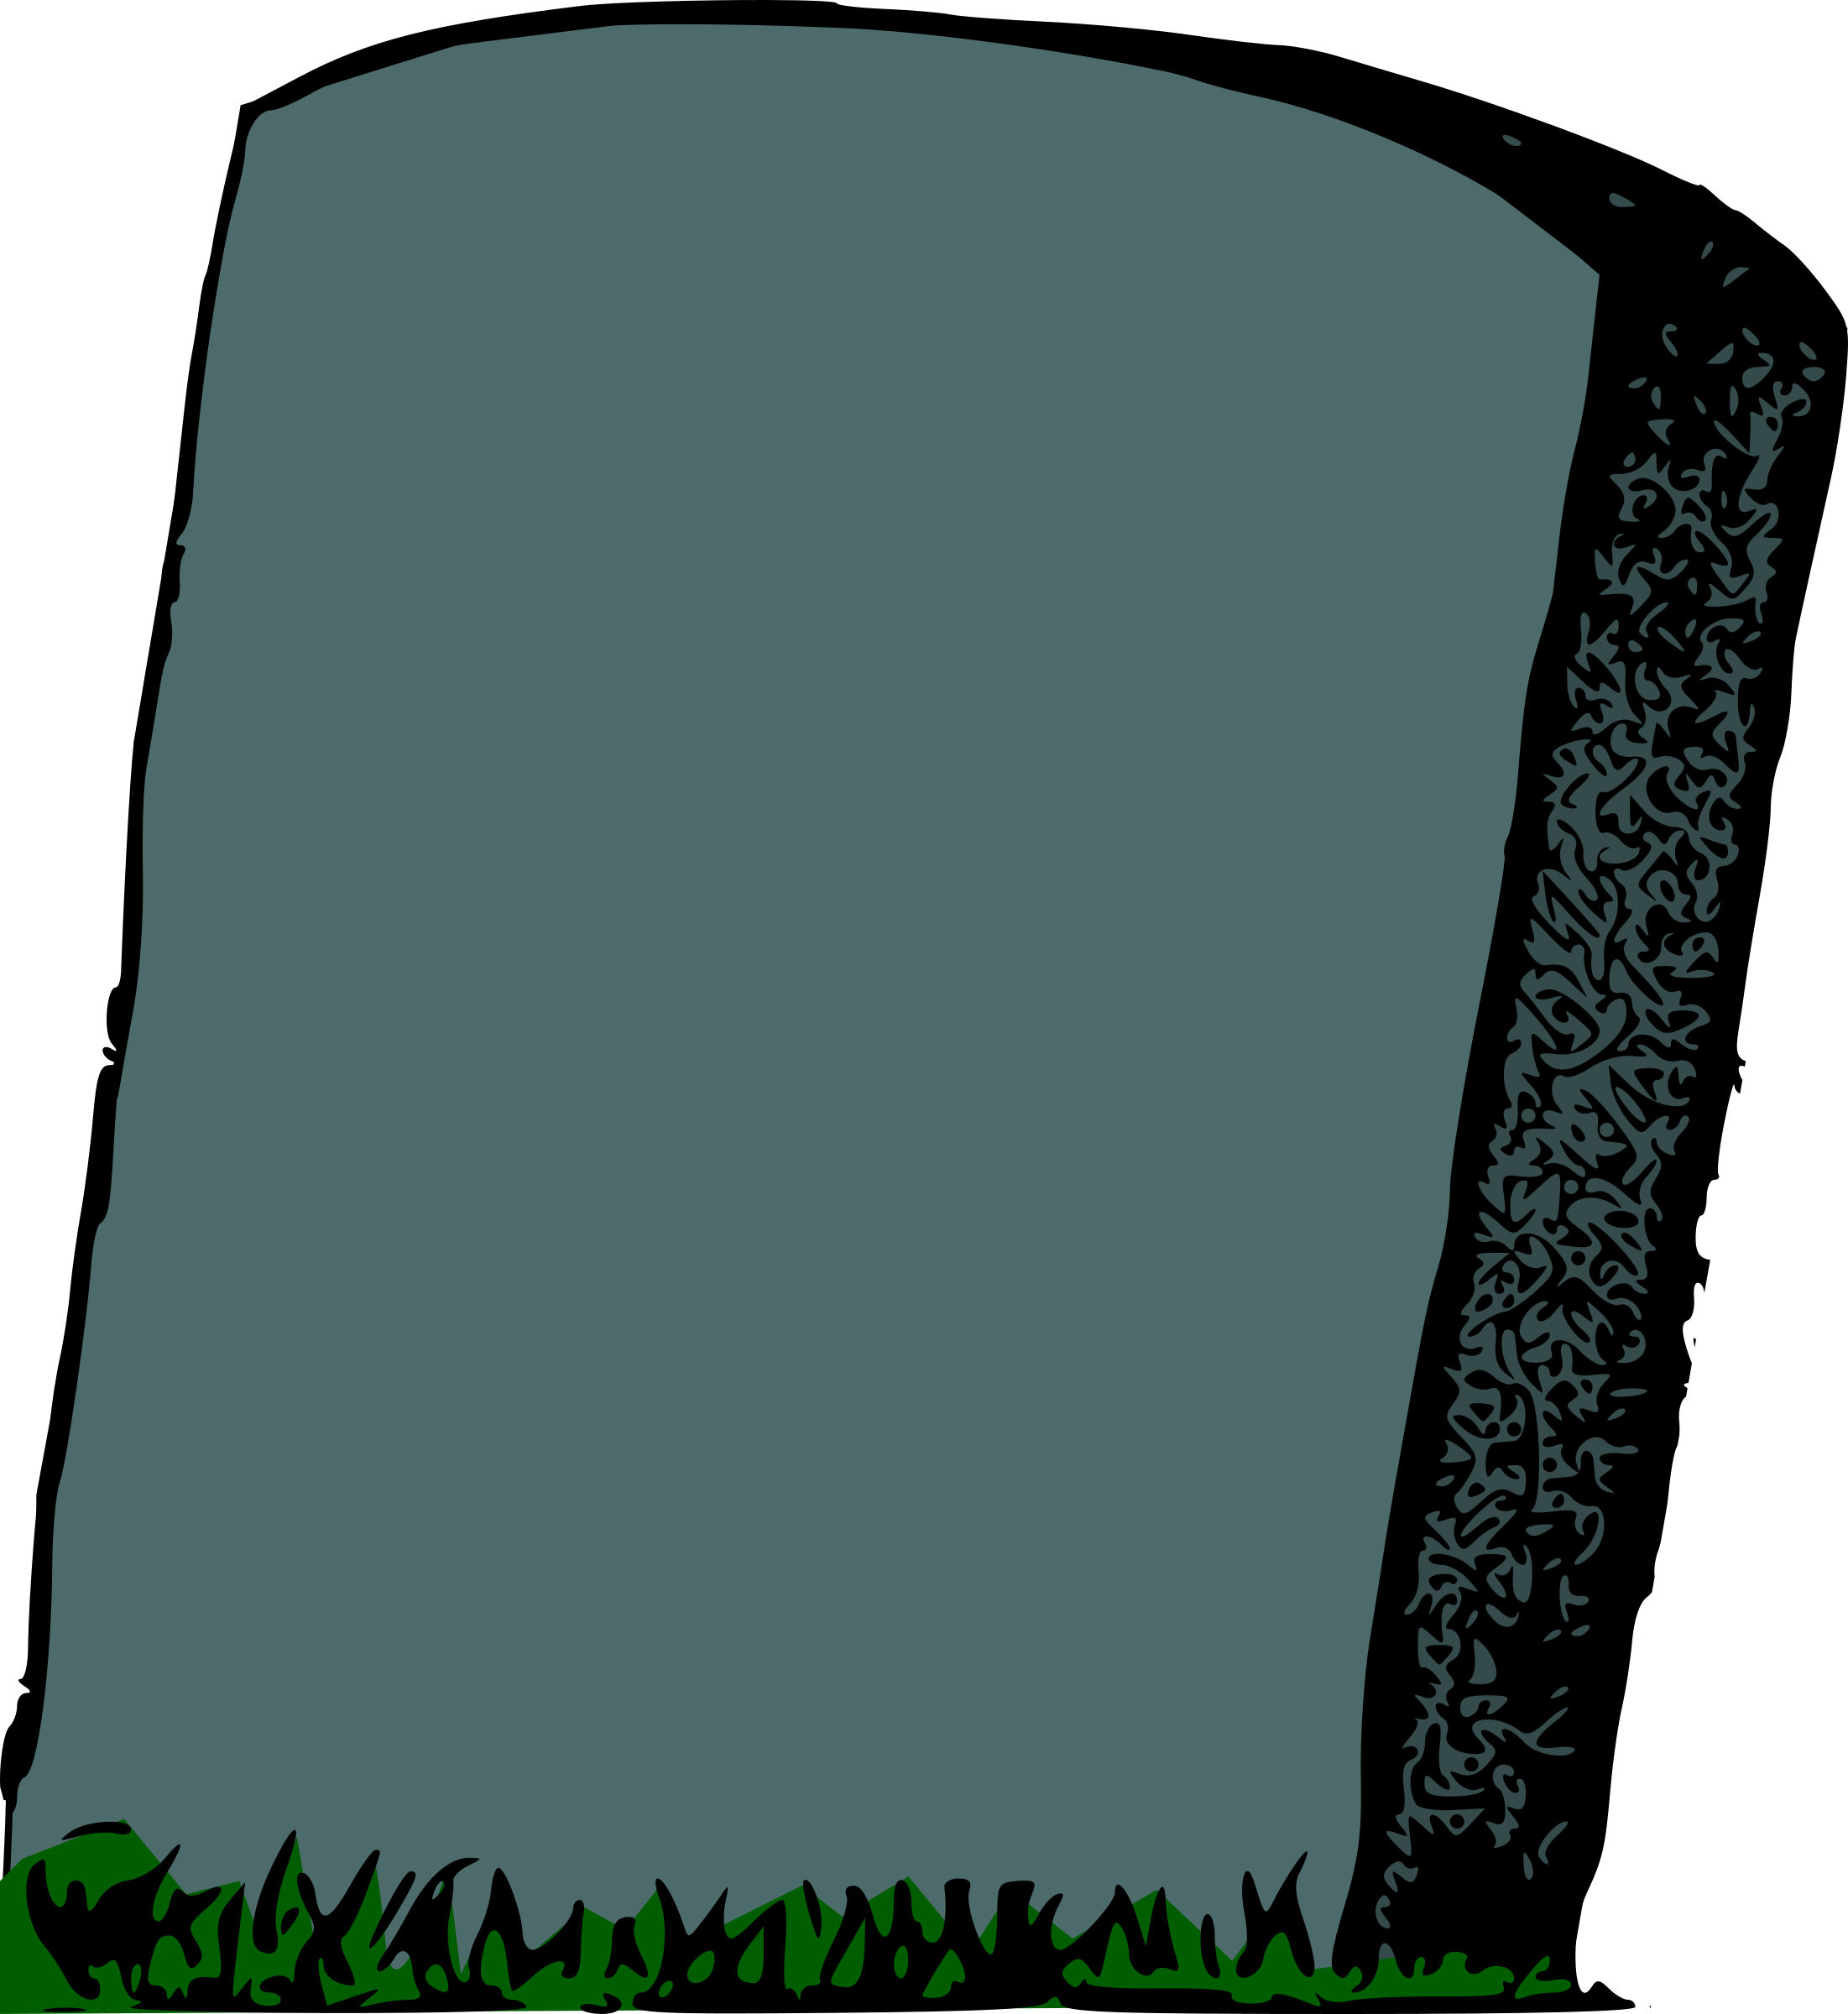 Gravestone clipart svg. Colour icons png free